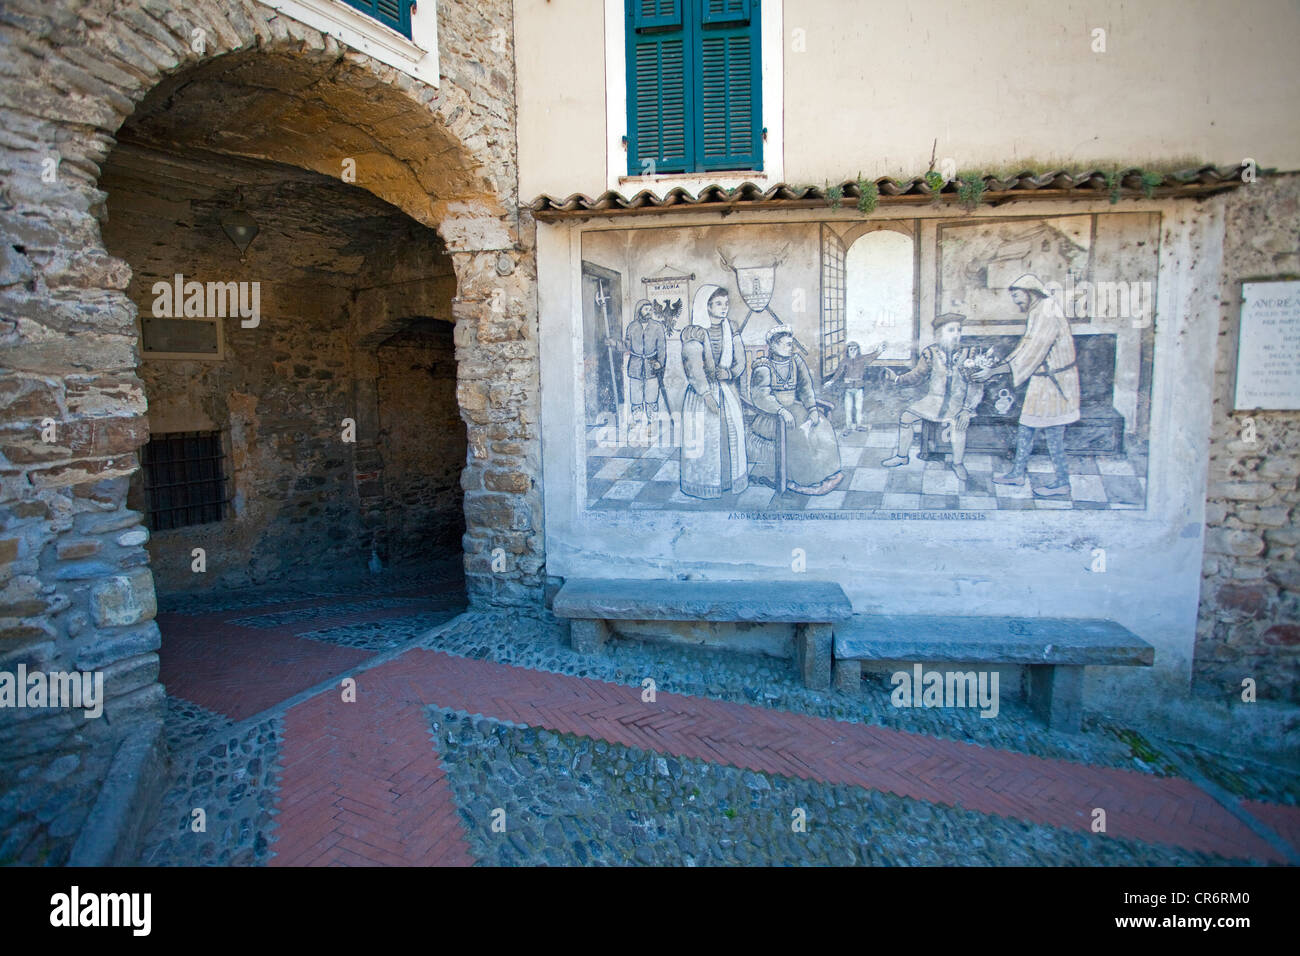 Wall painting with medieval motifs on the town square, , Imperia province, Riviera di Ponente, Liguria, Italy, Mediterranean - Stock Image